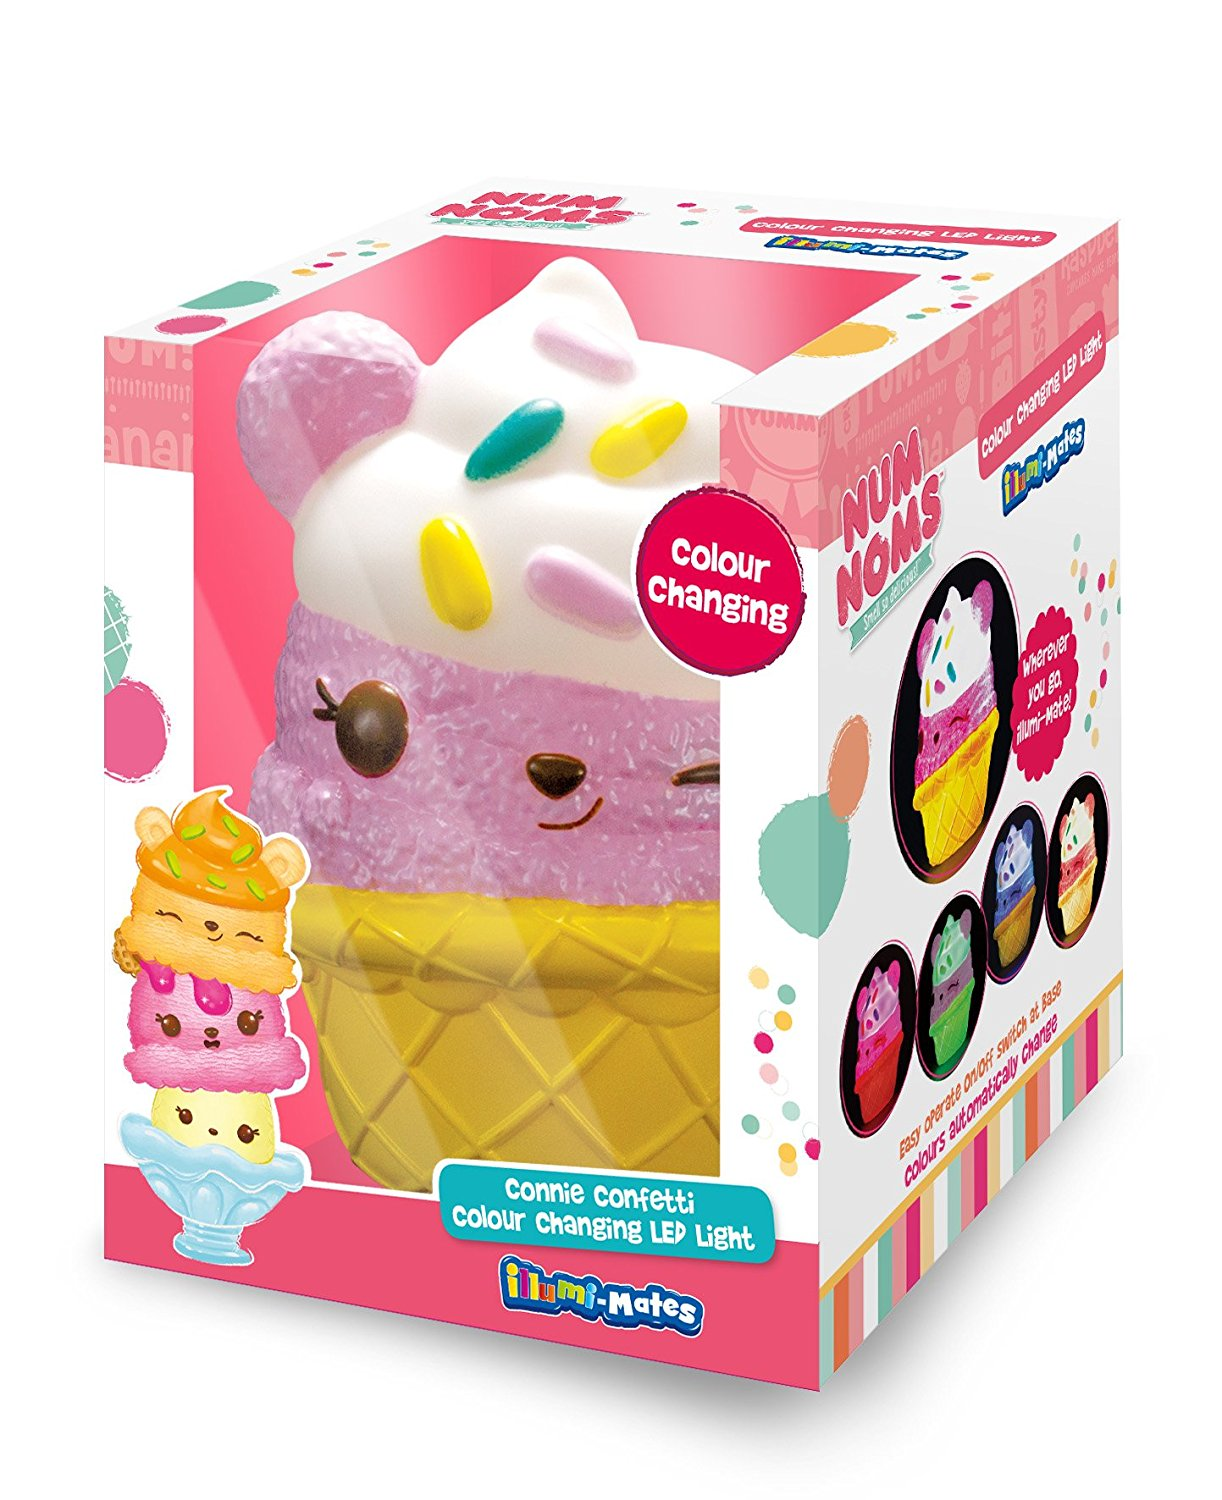 Num Noms 'Connie Confetti' Illumi-mates Led Light